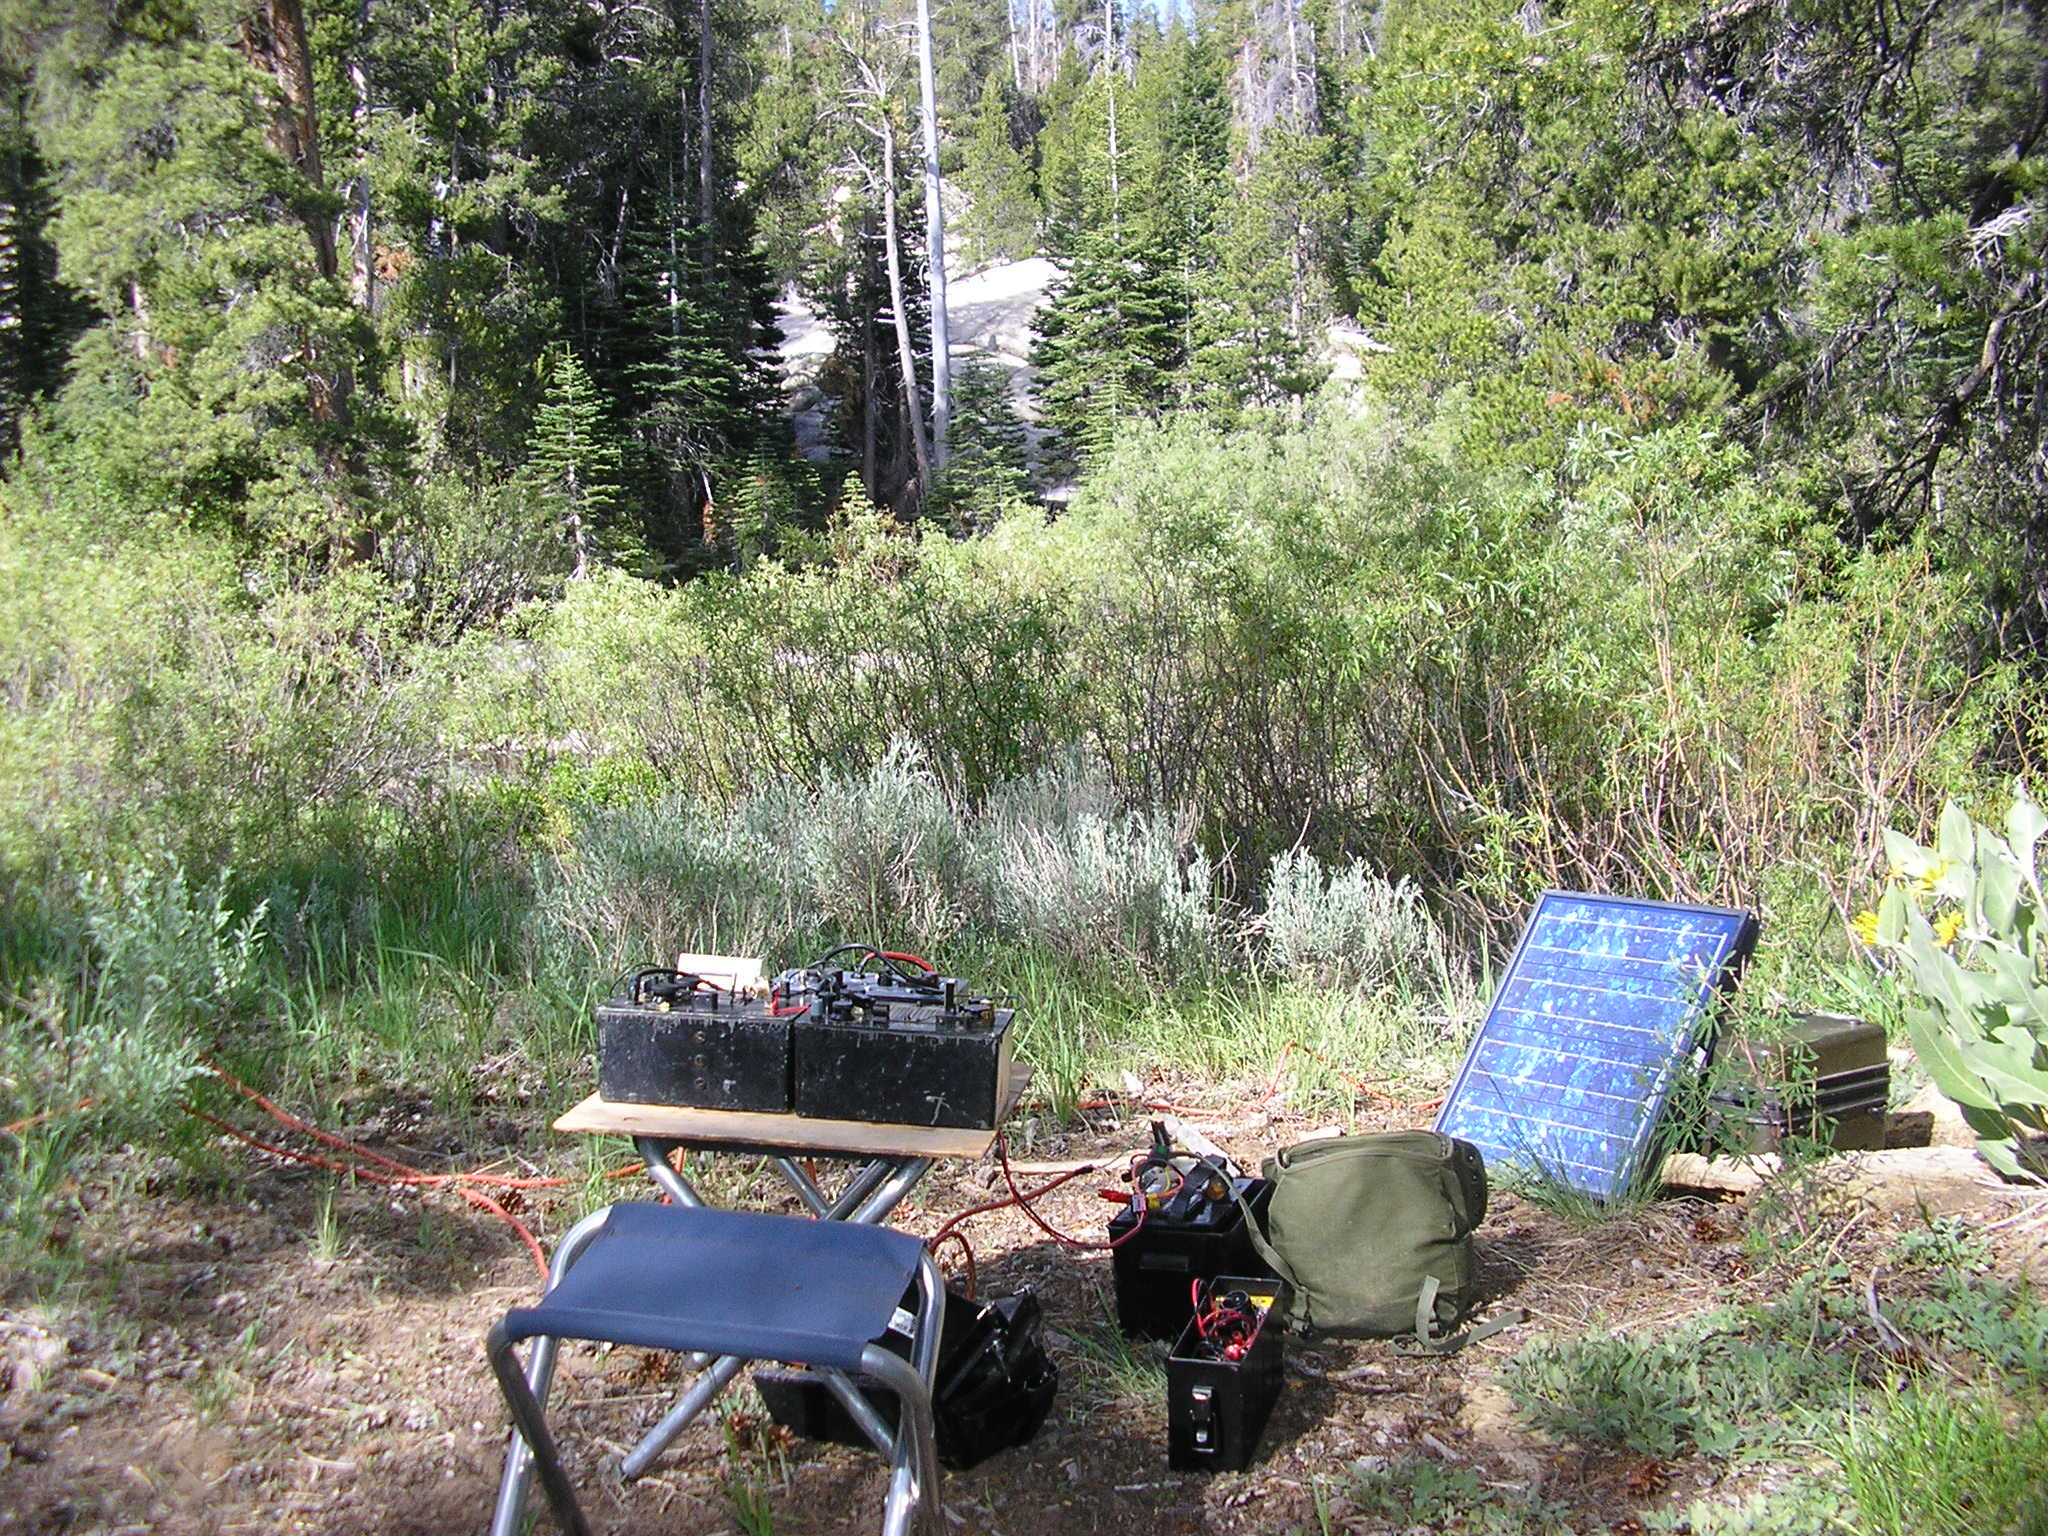 Emergency Radio Communications in the Field